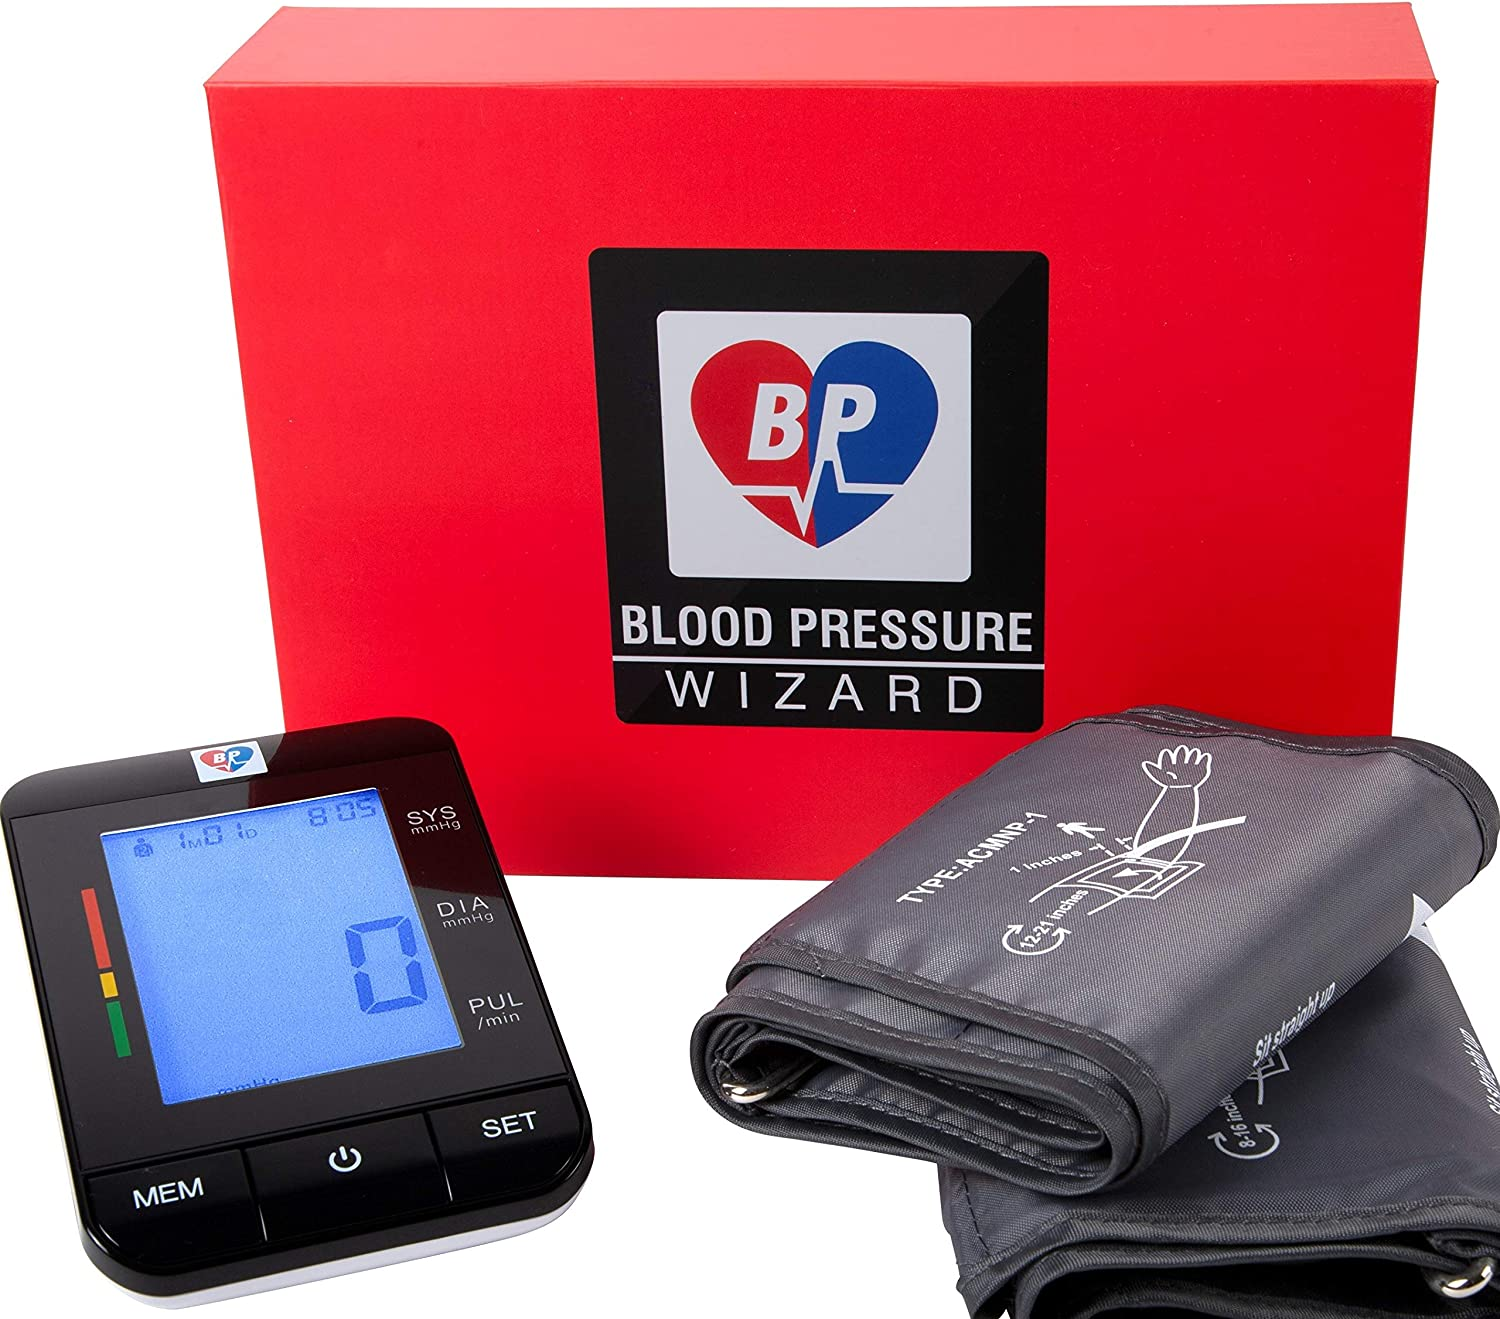 2 Size Cuffs. Standard 8 -16 Extra Large Cuff 9 -21 Automatic Blood Pressure Monitor Blood Pressure Machine. BP Wizard BP Machine. Most Accurate BP Monitor. Largest Cuff Available.